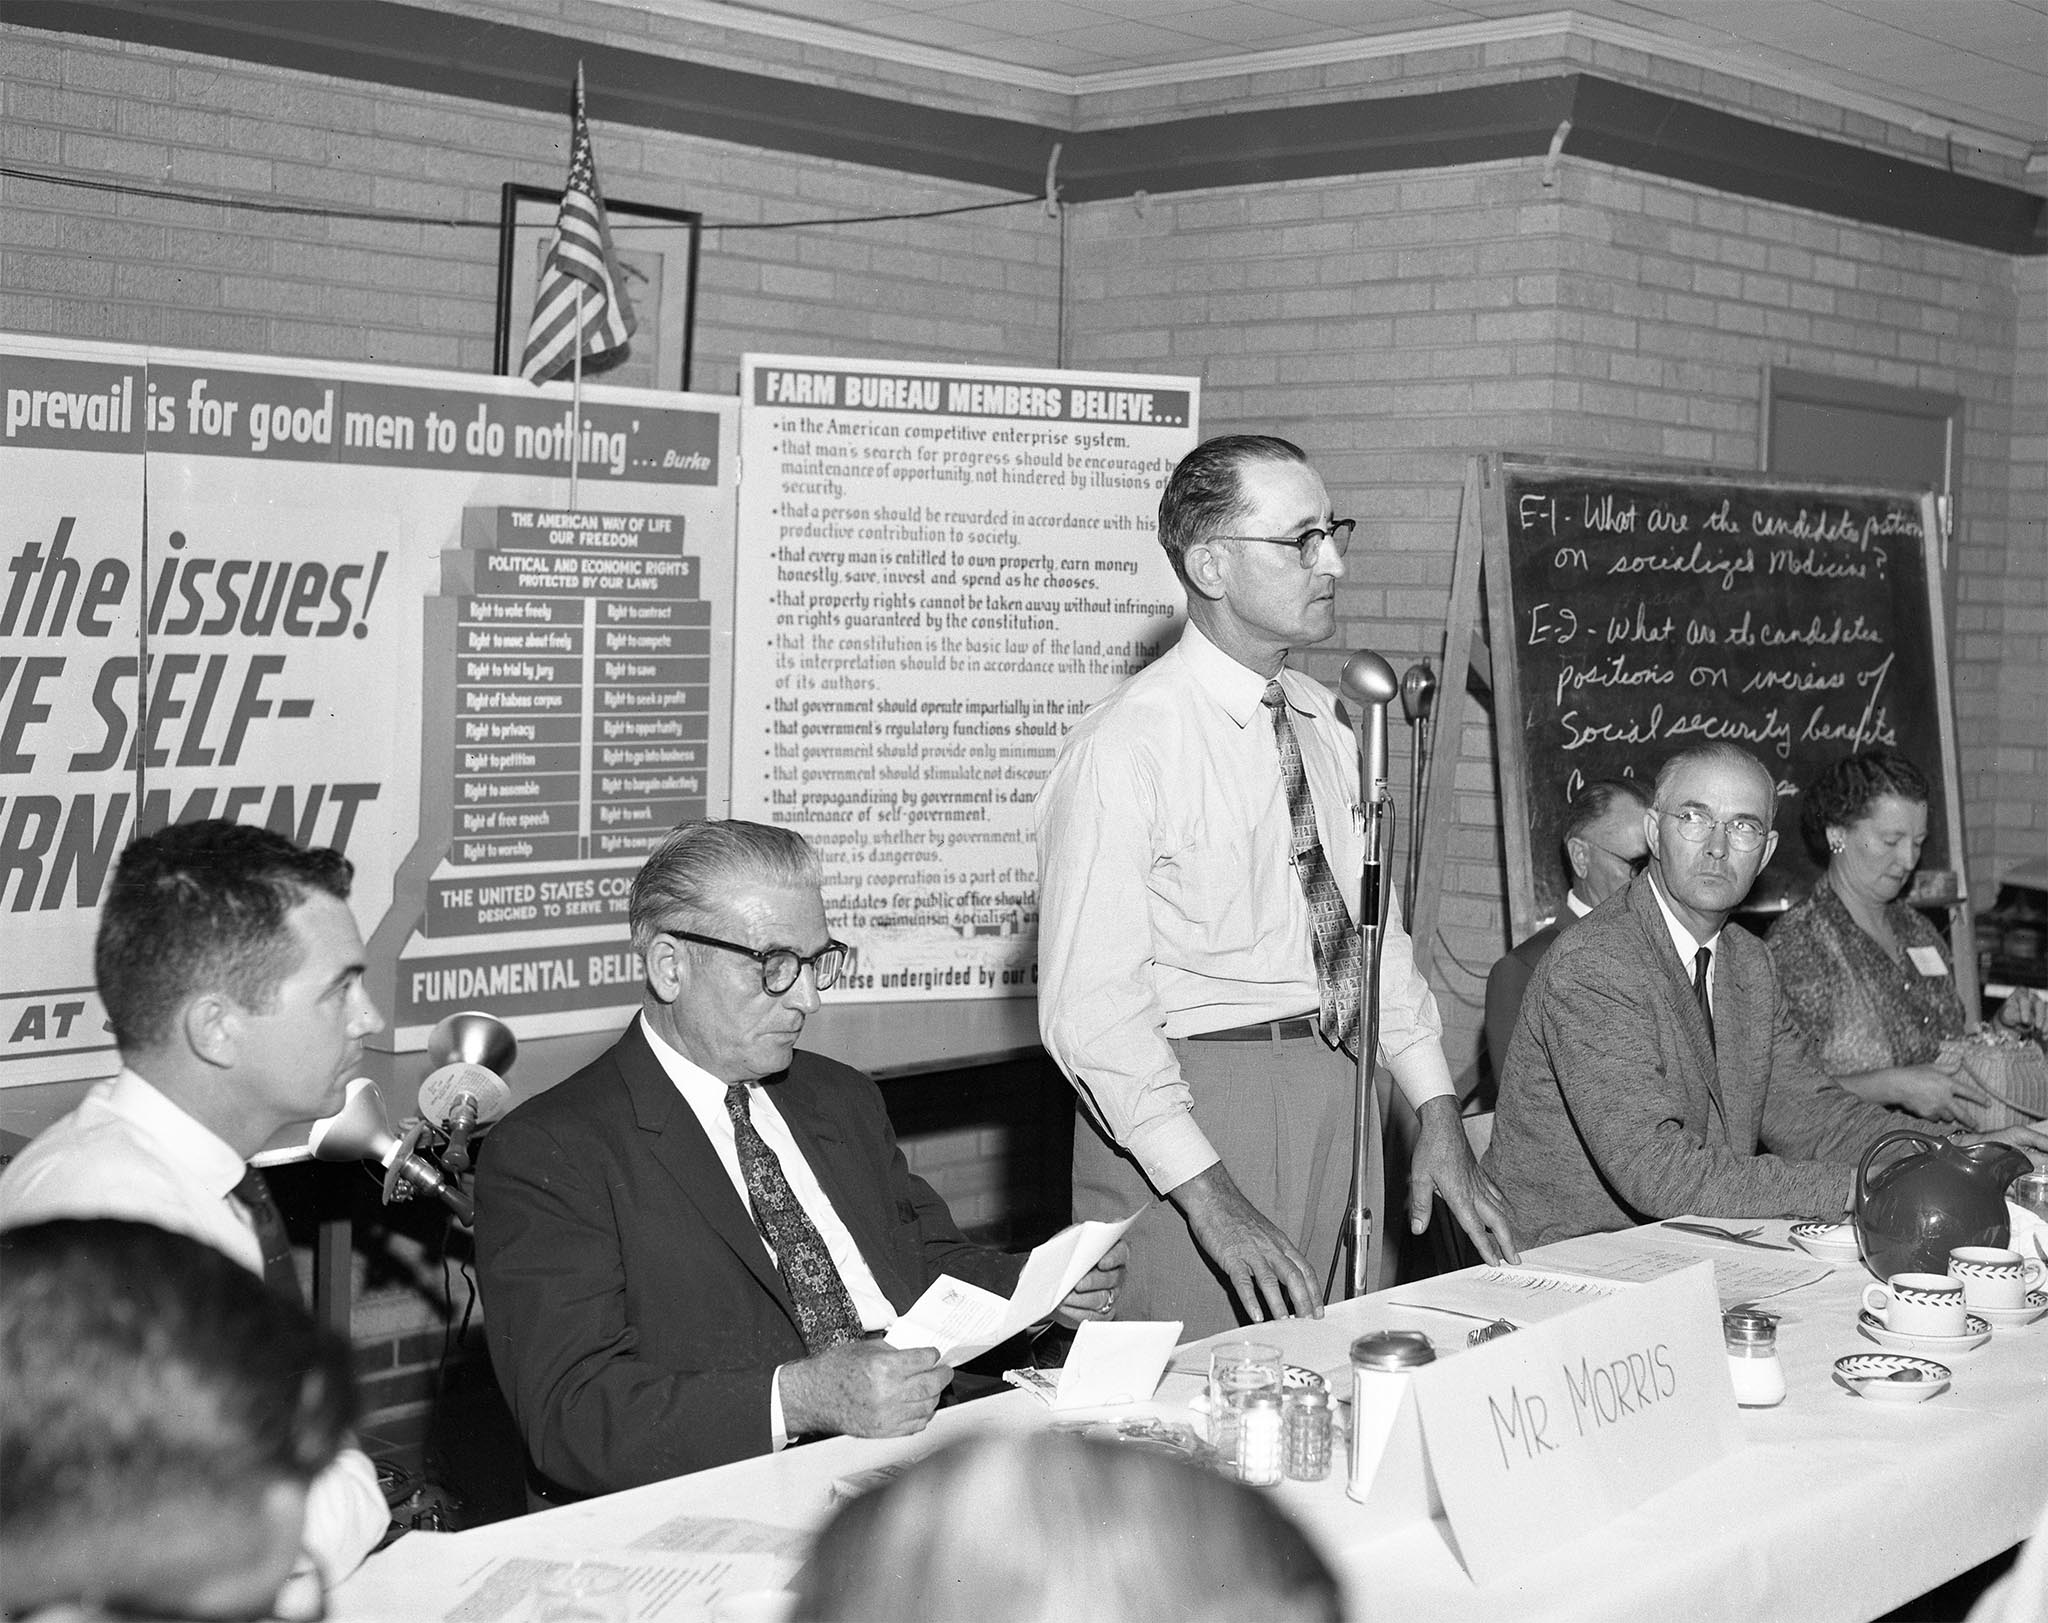 On July 10, 1958, members of Farm Bureau counties in western Oklahoma held this Meet the Candidate forum with two runoff candidates for the democratic nomination for congressman. Congressman Toby Morris (second from left) and challenger Victor Wickersham (second from right) were guests of 100 leaders from 17 western counties of Oklahoma's Congressional District 6, shown here with OKFB President Lewis H. Munn (at microphone). The candidates were quizzed about their beliefs on 13 different issues and government philosophies in order to compare them against Farm Bureau policy.